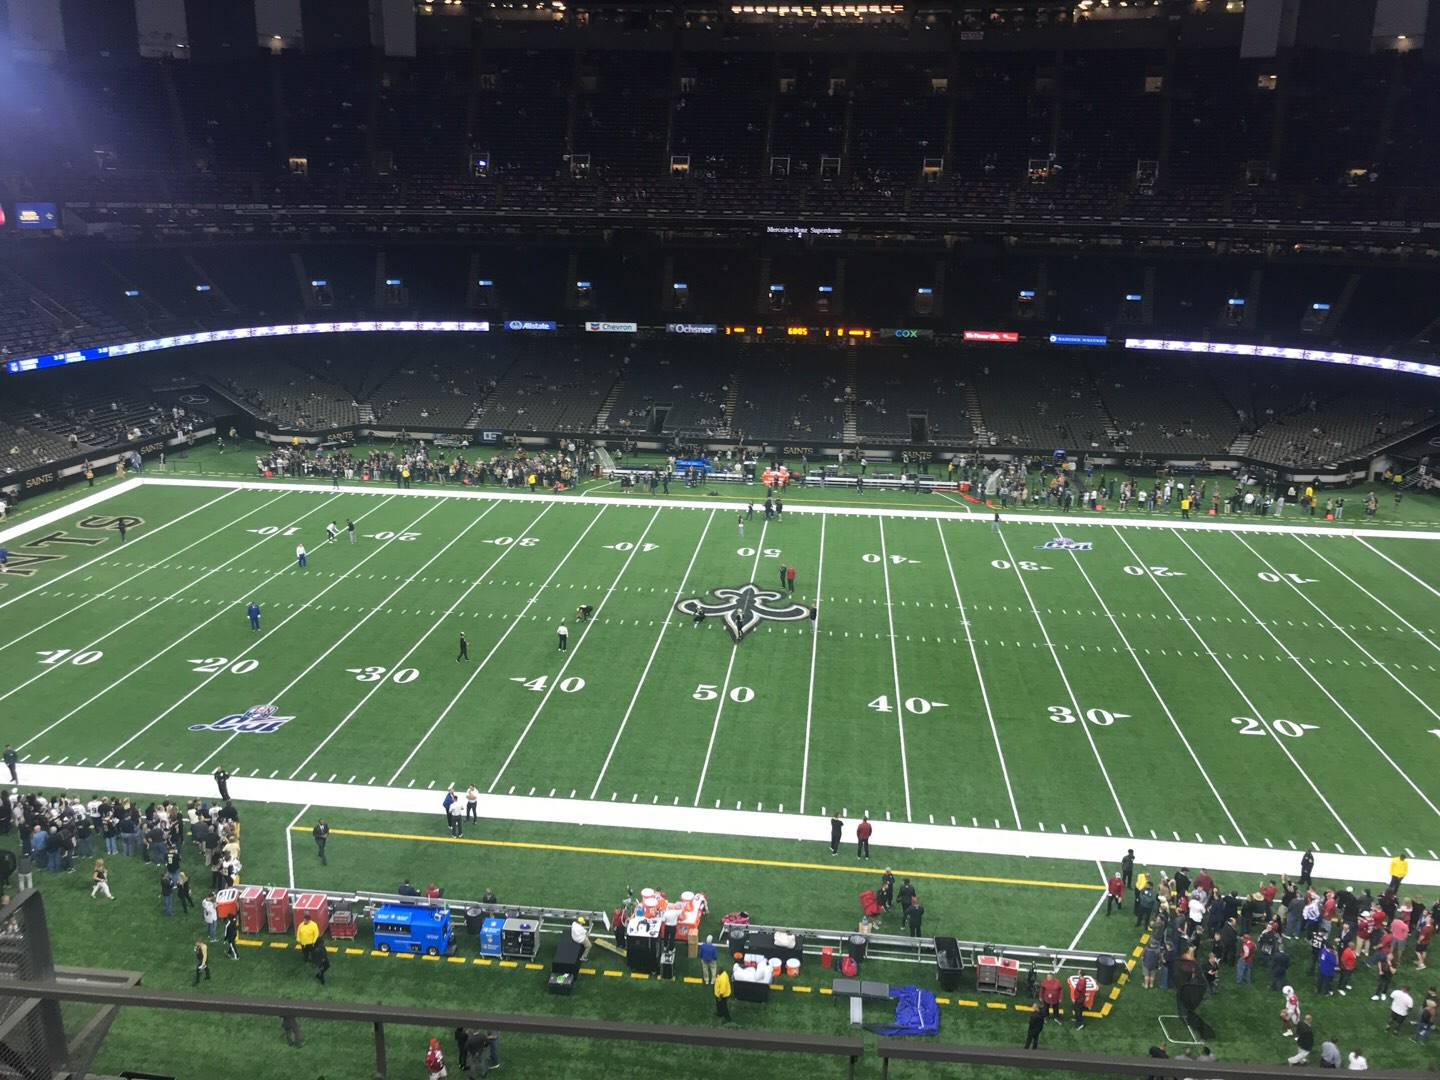 Mercedes-Benz Superdome Section 515 Row 5 Seat 12